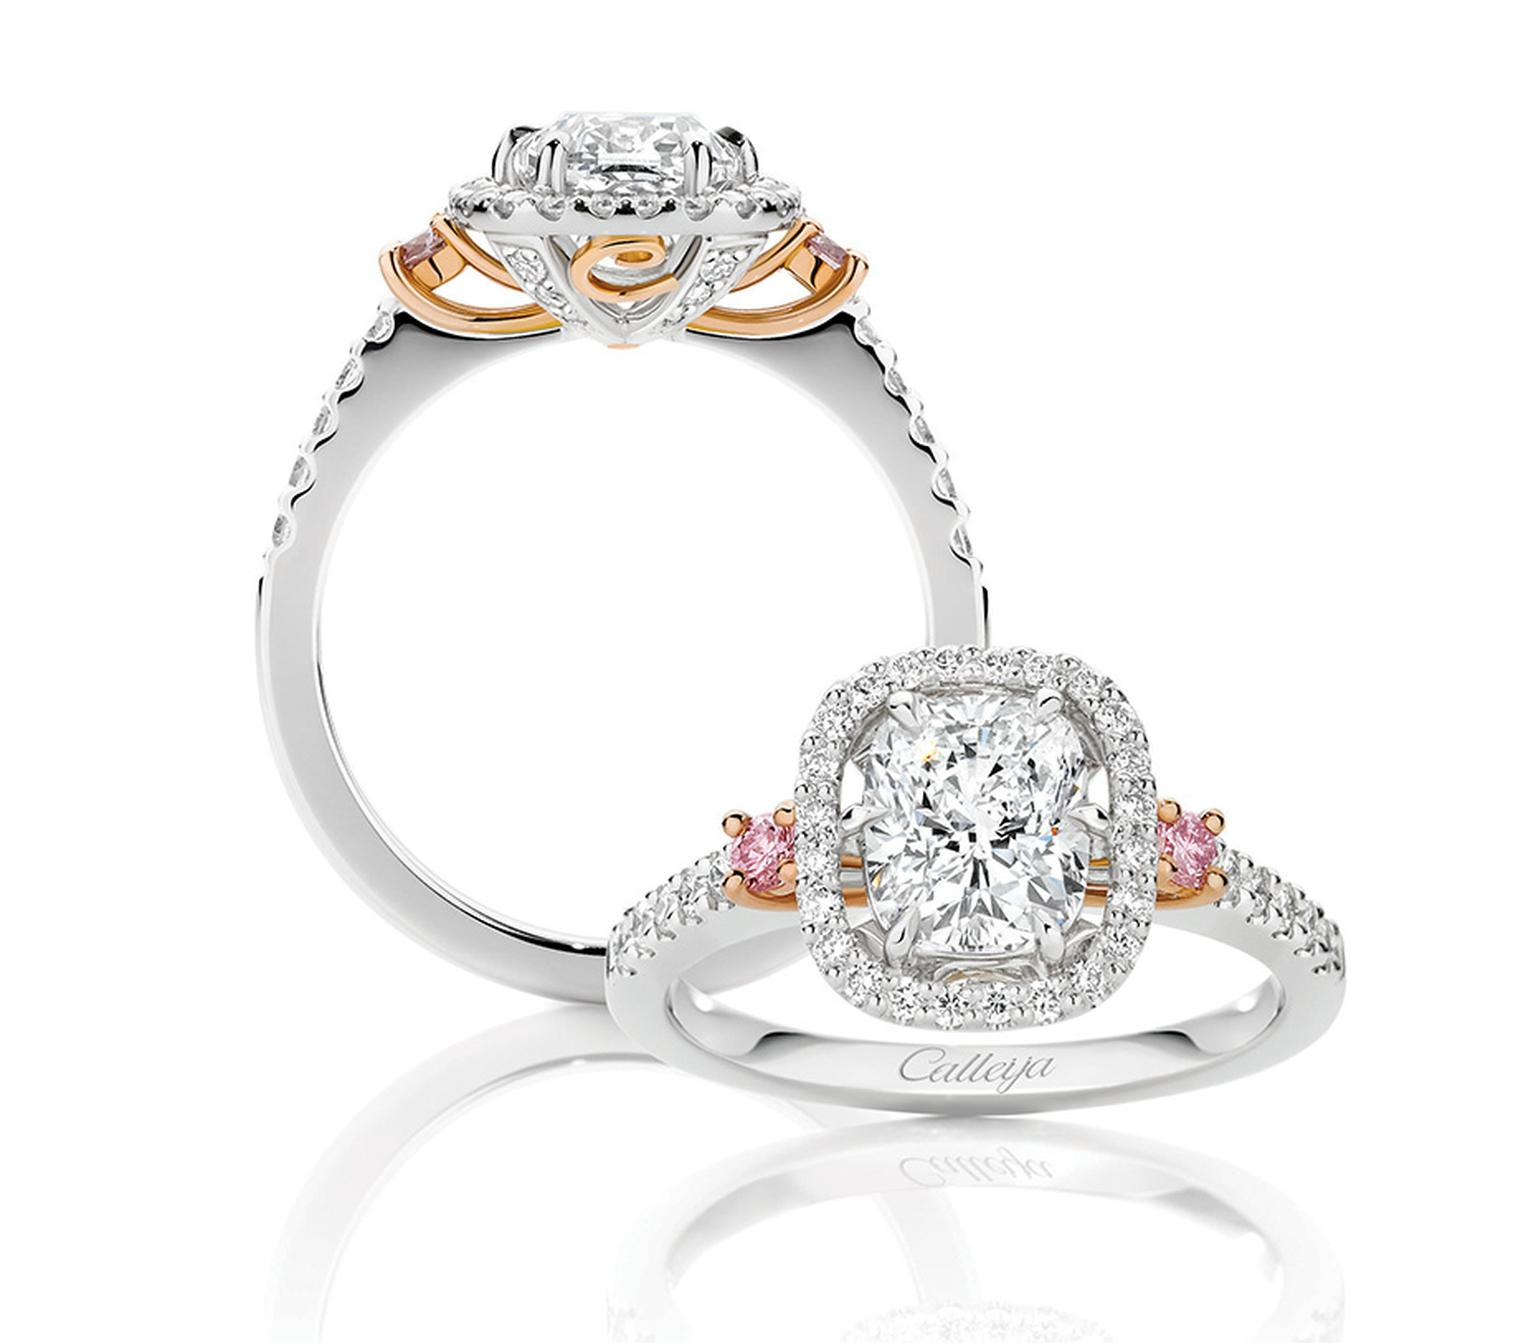 John Calleija patented signature-cut 1.50ct Glacier diamond engagement ring, flanked by pink diamonds.